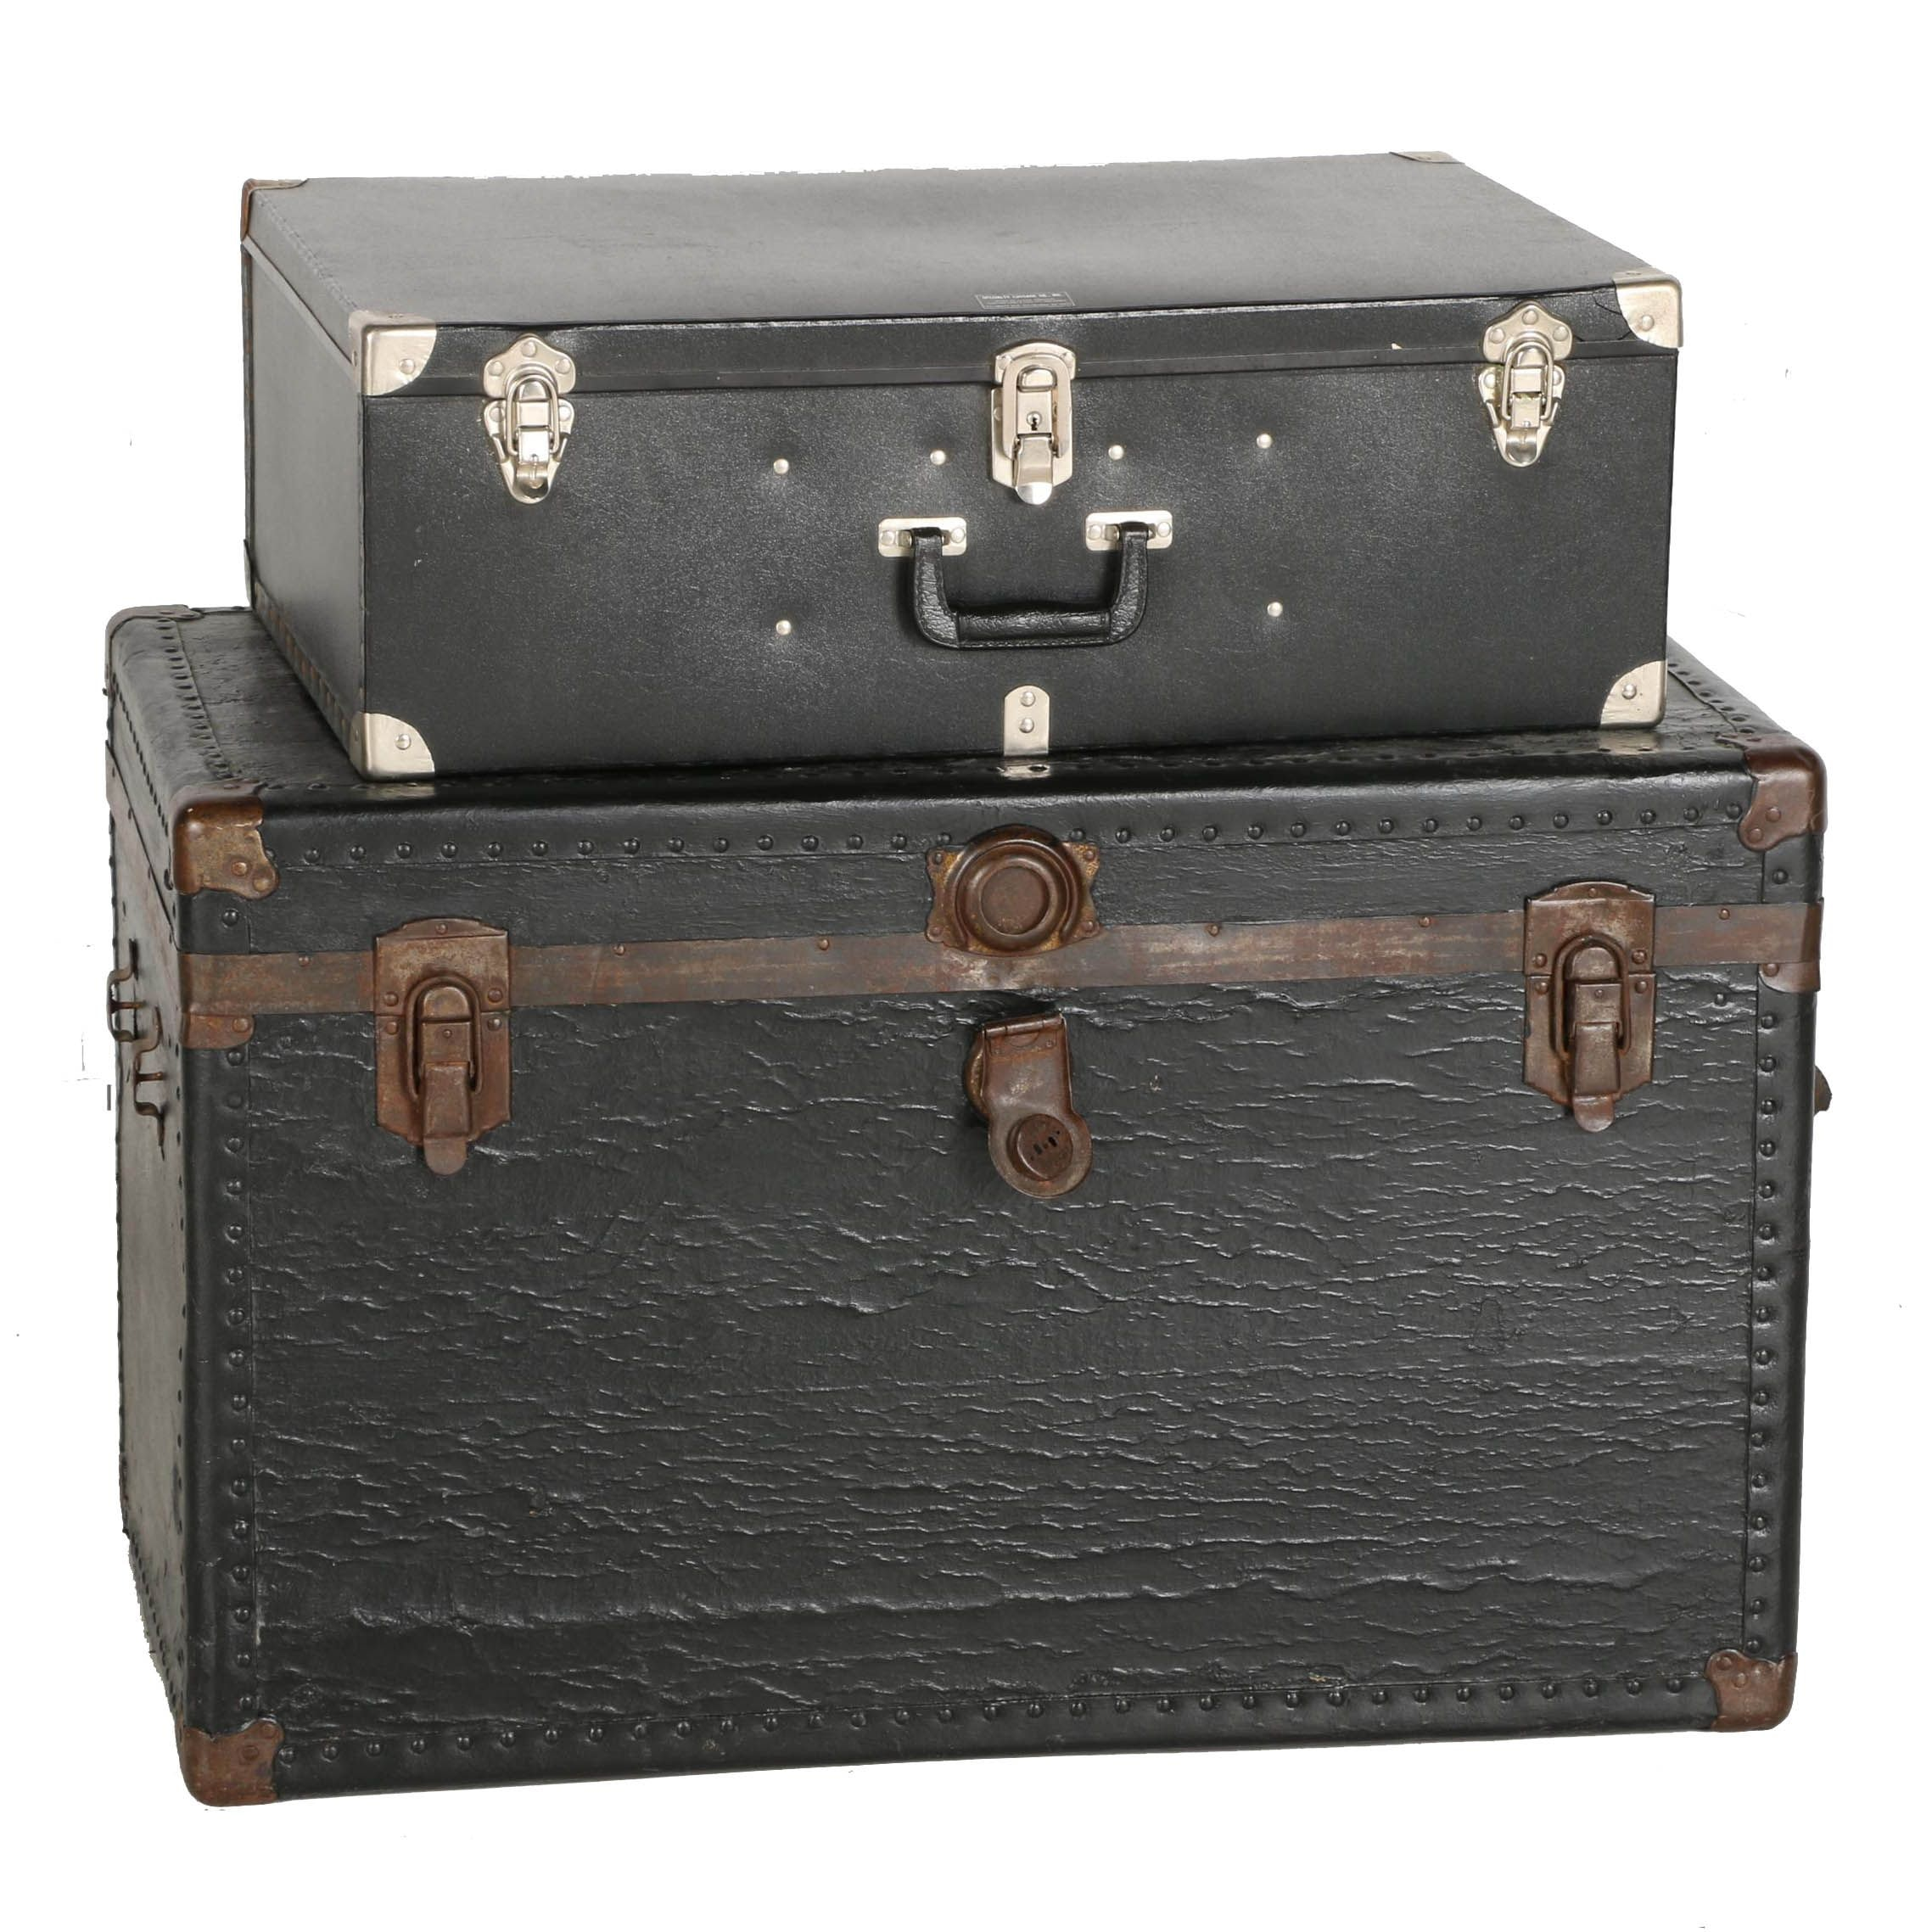 Vintage Wooden Storage Trunk and a Specialty Luggage Co. Trunk